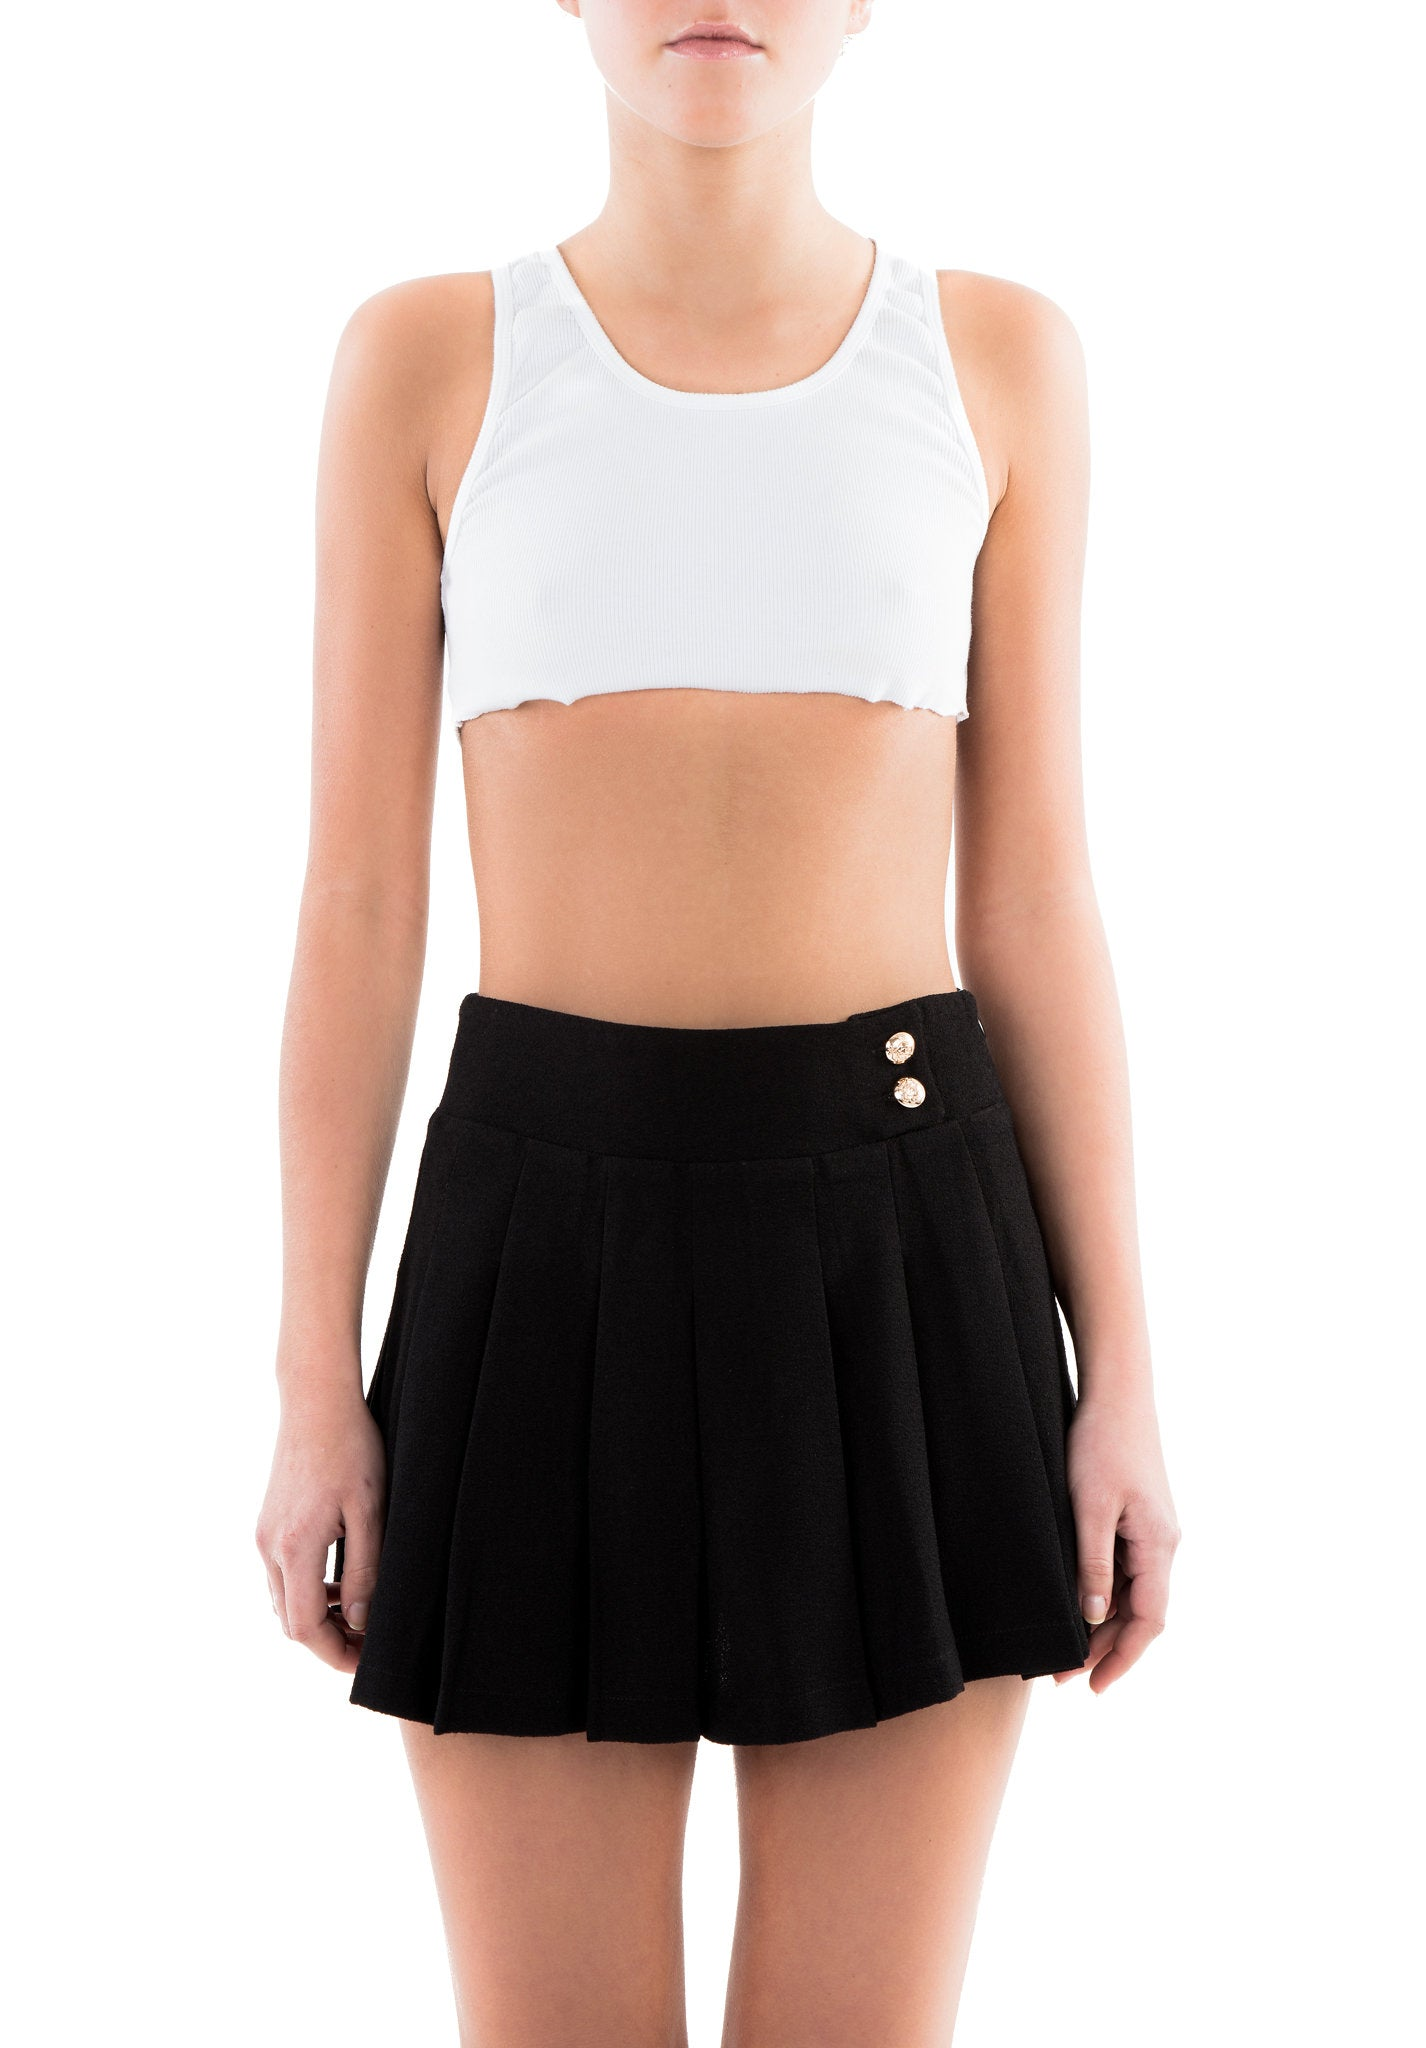 CHER skirt - black